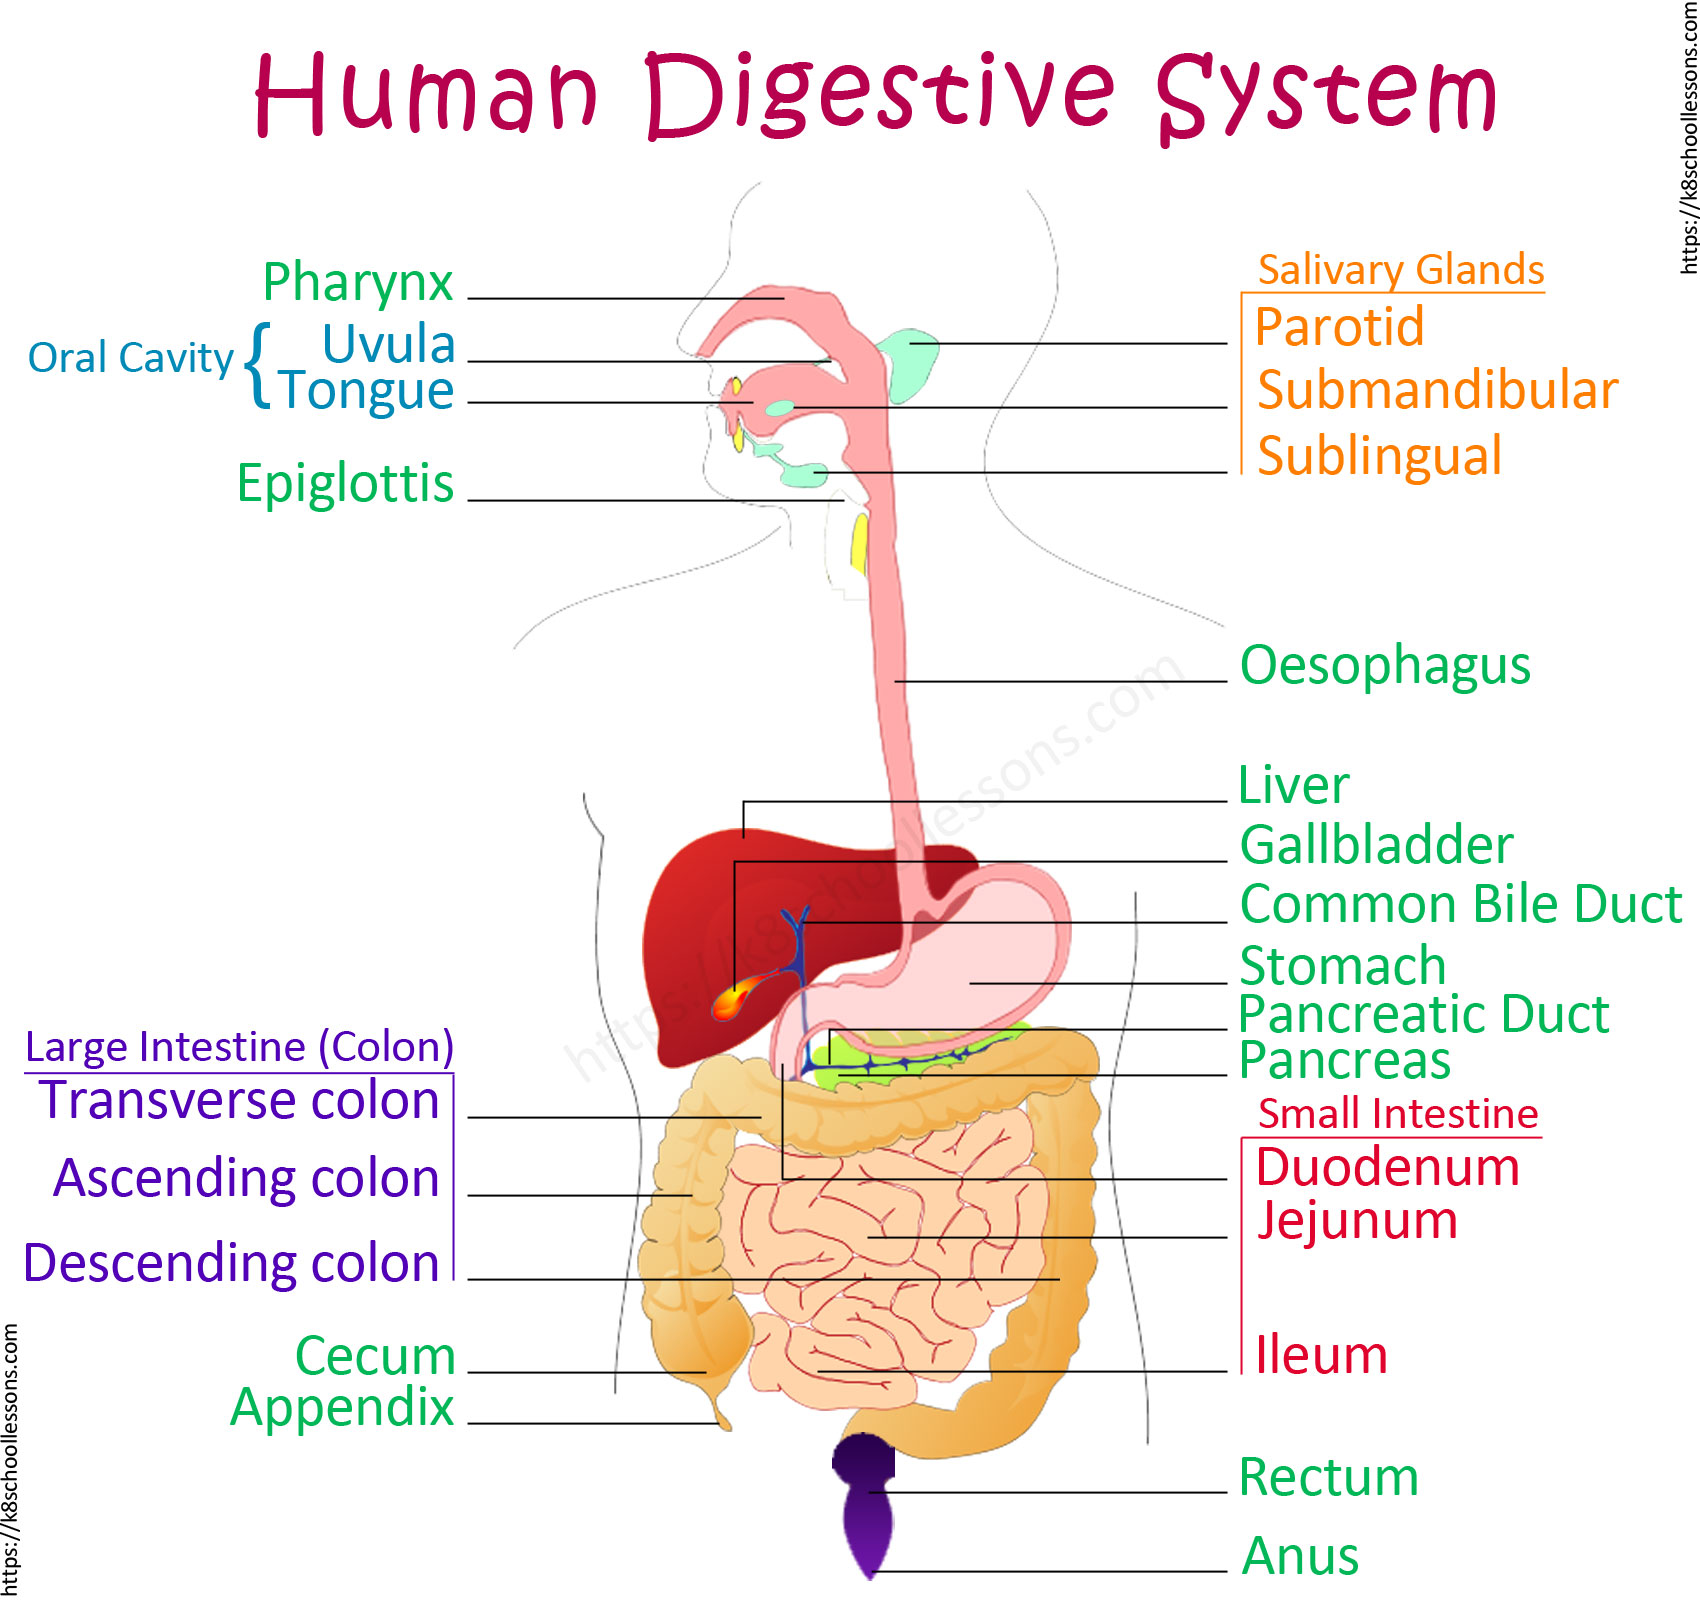 Human Digestive System Diagram Sciencelessons On